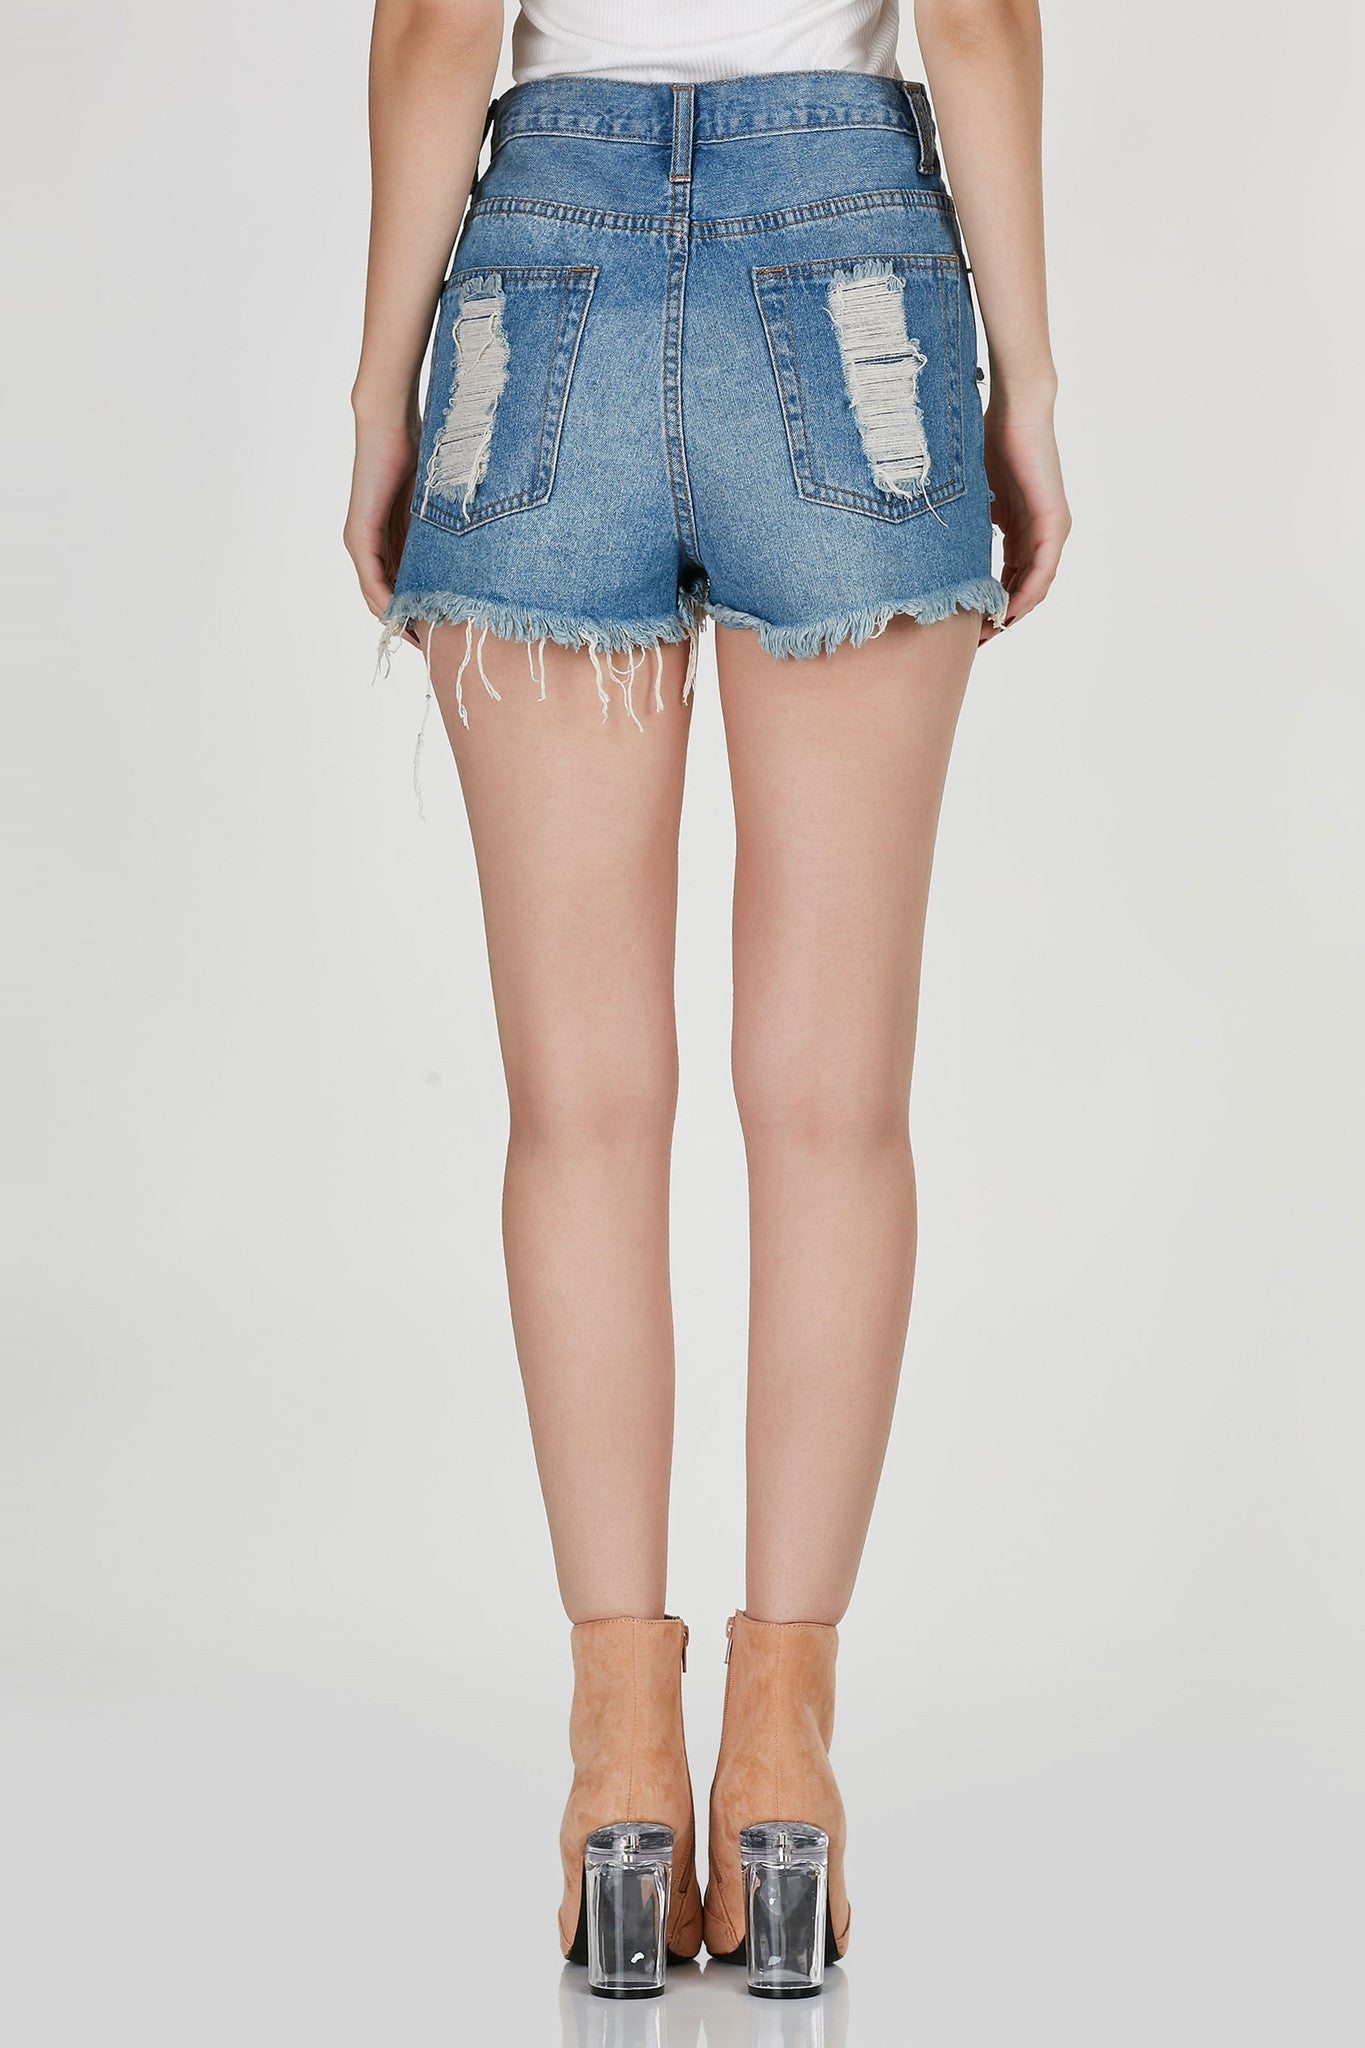 Your new favorite pair of ripped denim jeans. There is no such thing as too many high waisted shorts! These awesome pair features serious distressing in front with shredding in the back. Five functional pockets with single zip and button for closure. Will go well with any crop tops in your closet!